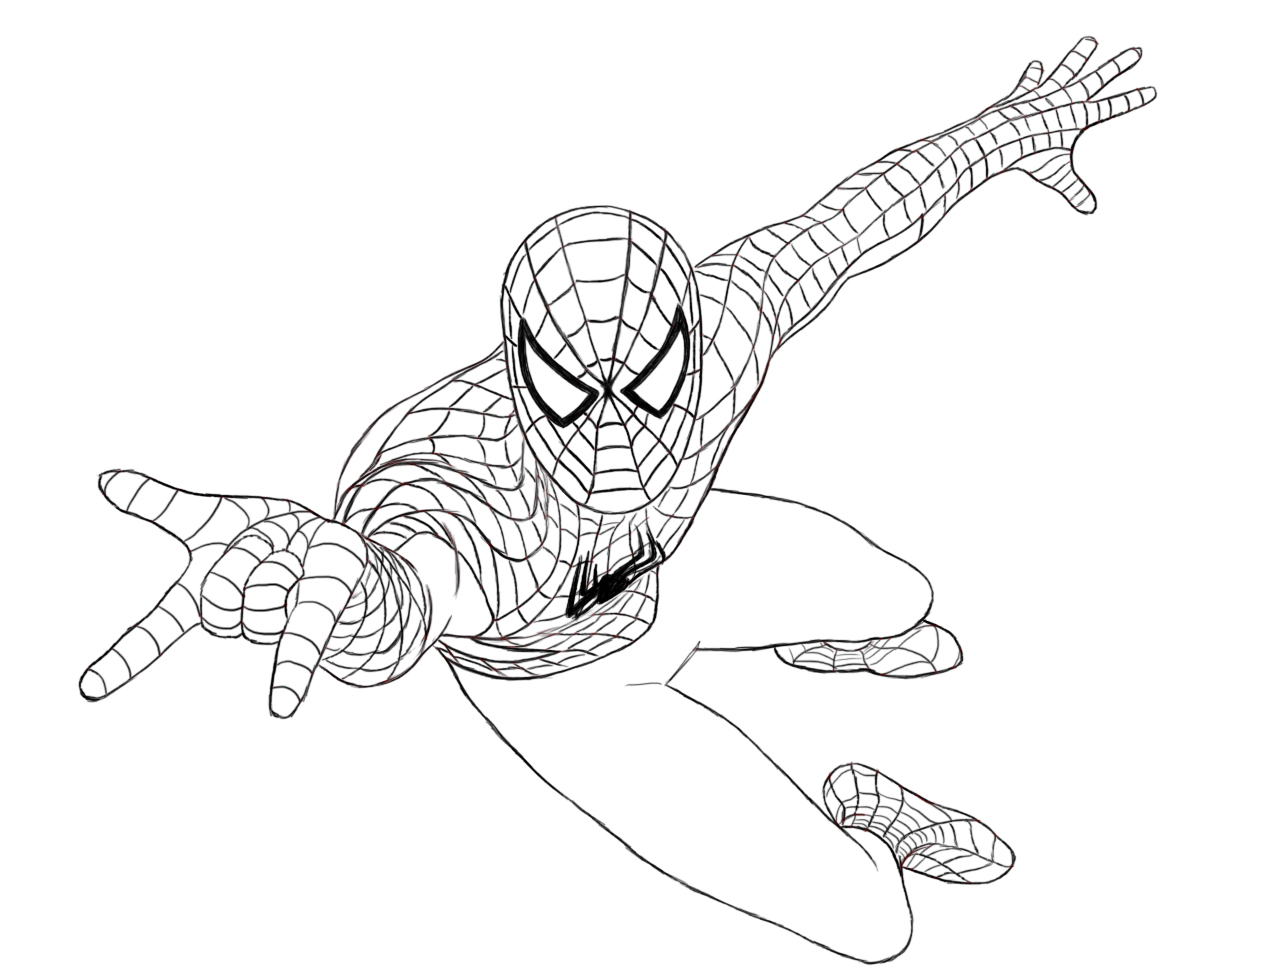 1280x973 how to draw spiderman - Spider Man Gratuit